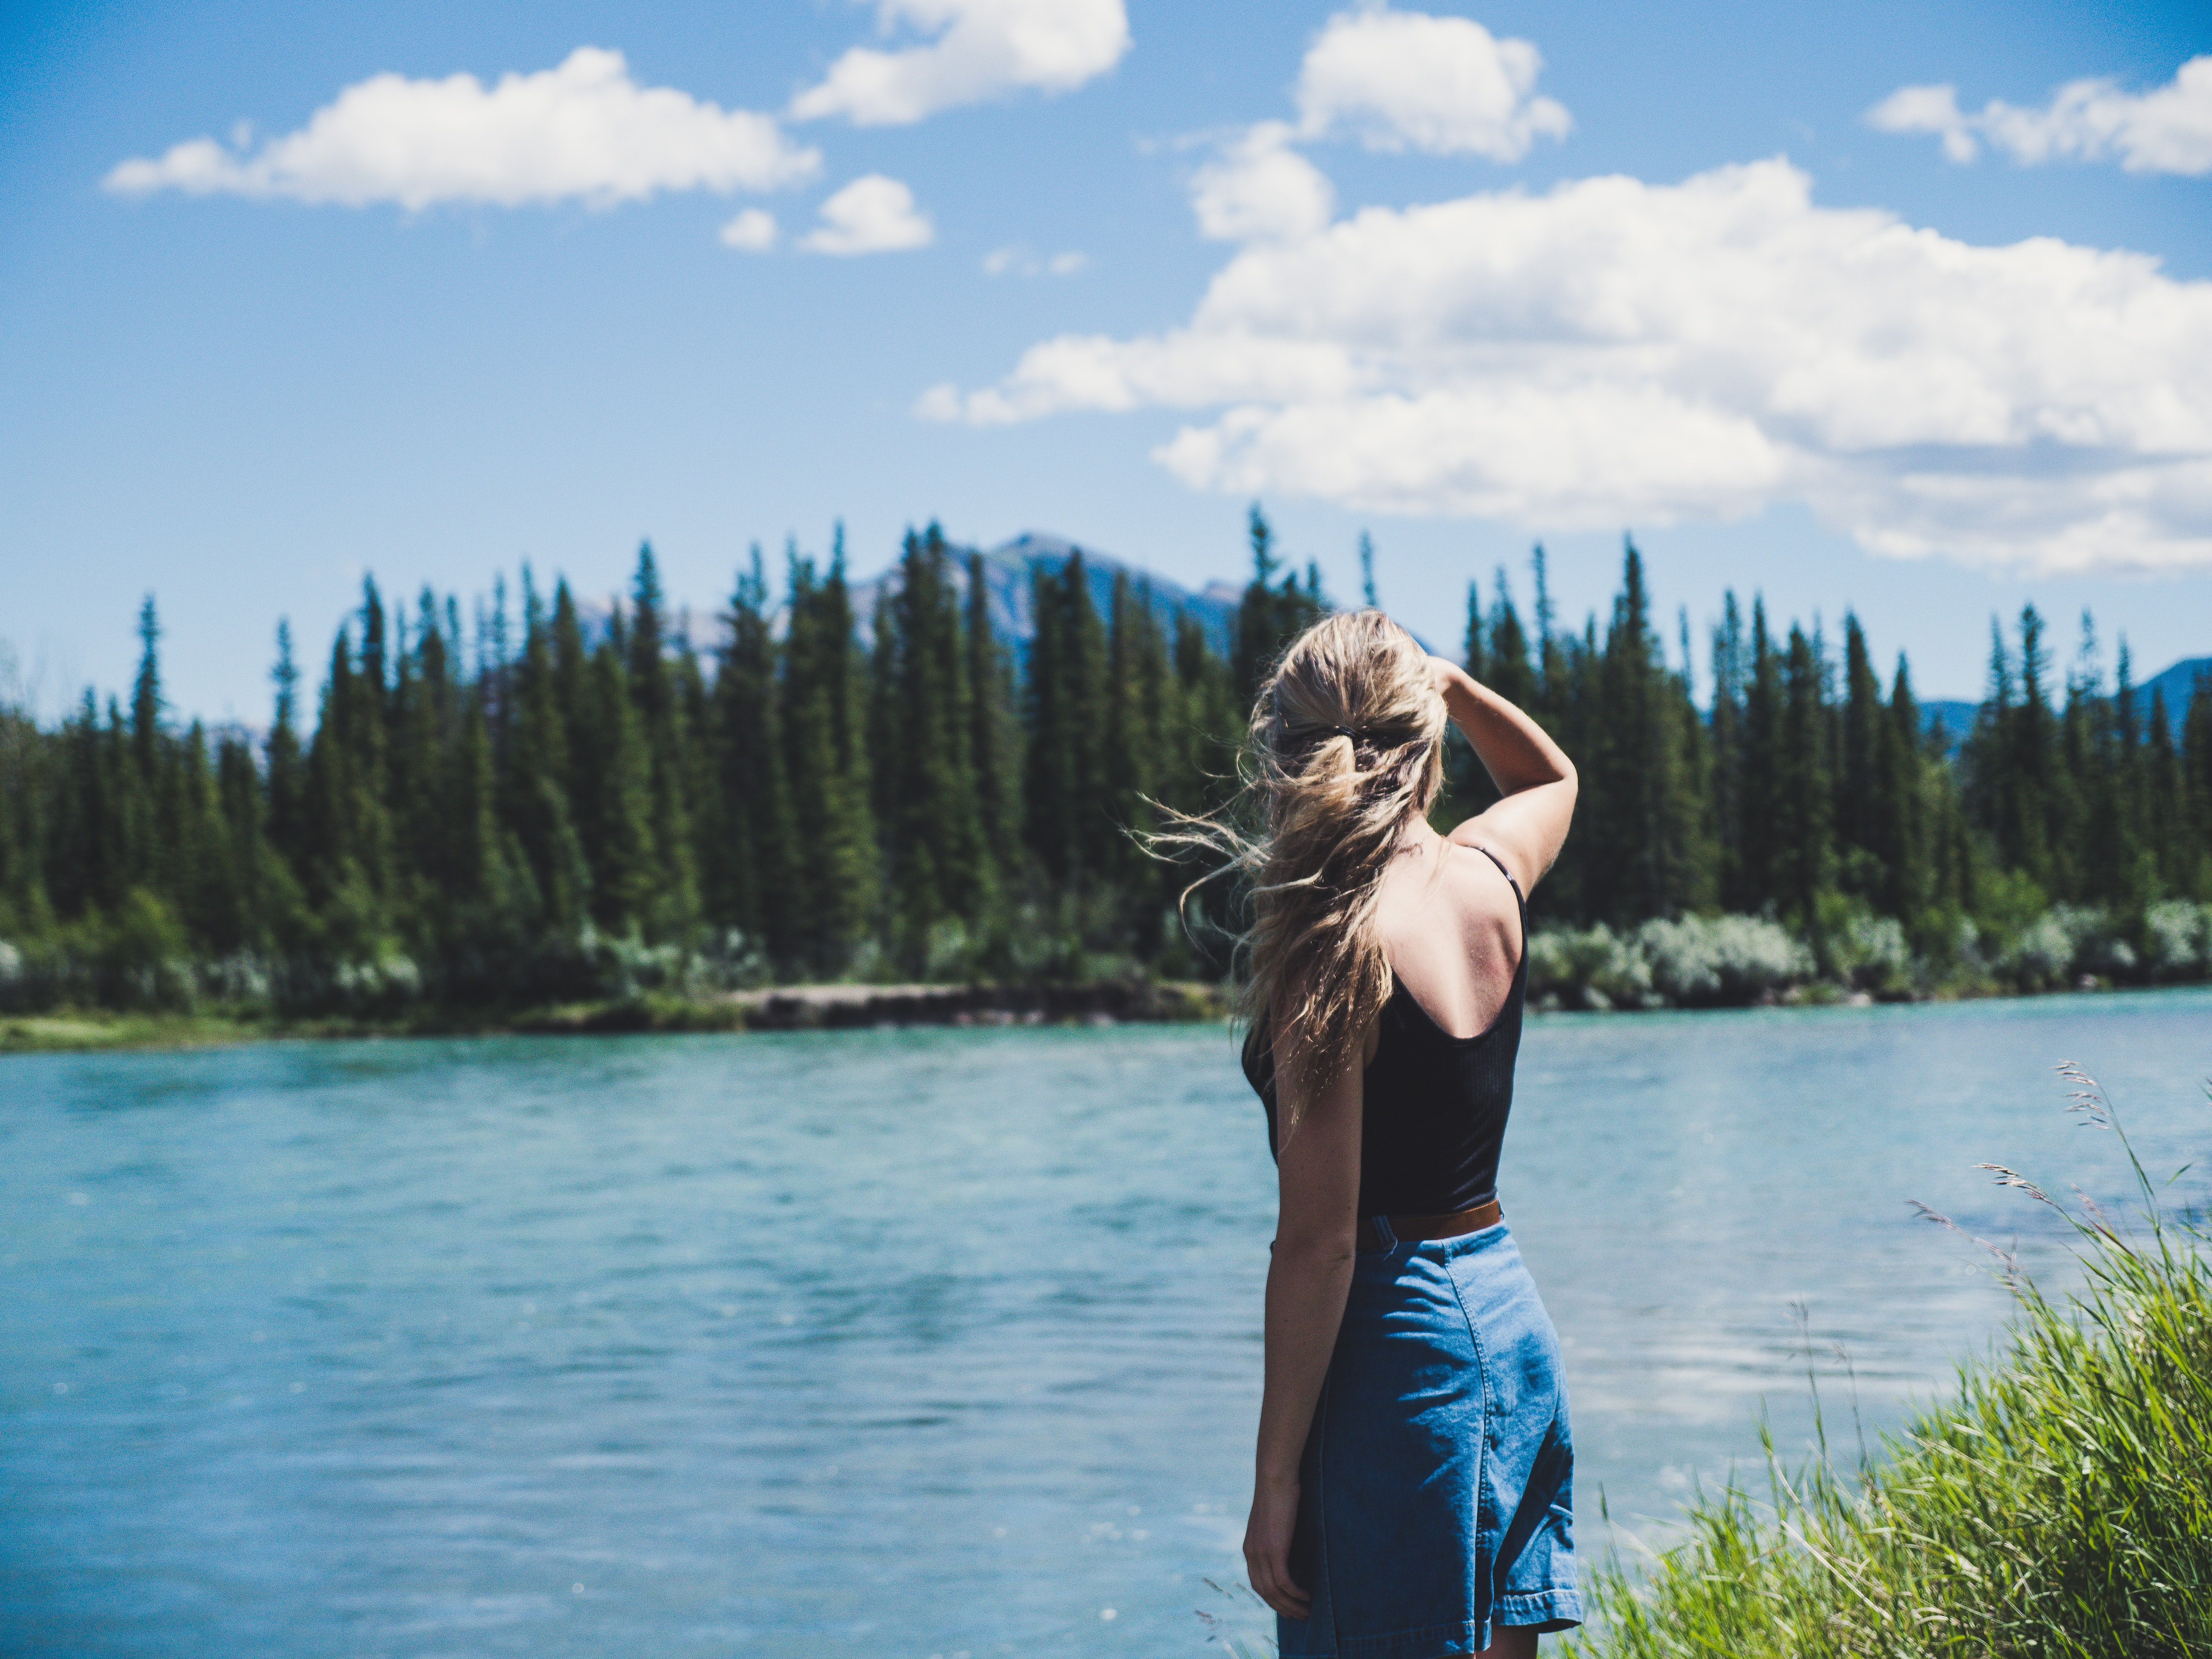 woman in black camisole standing near river